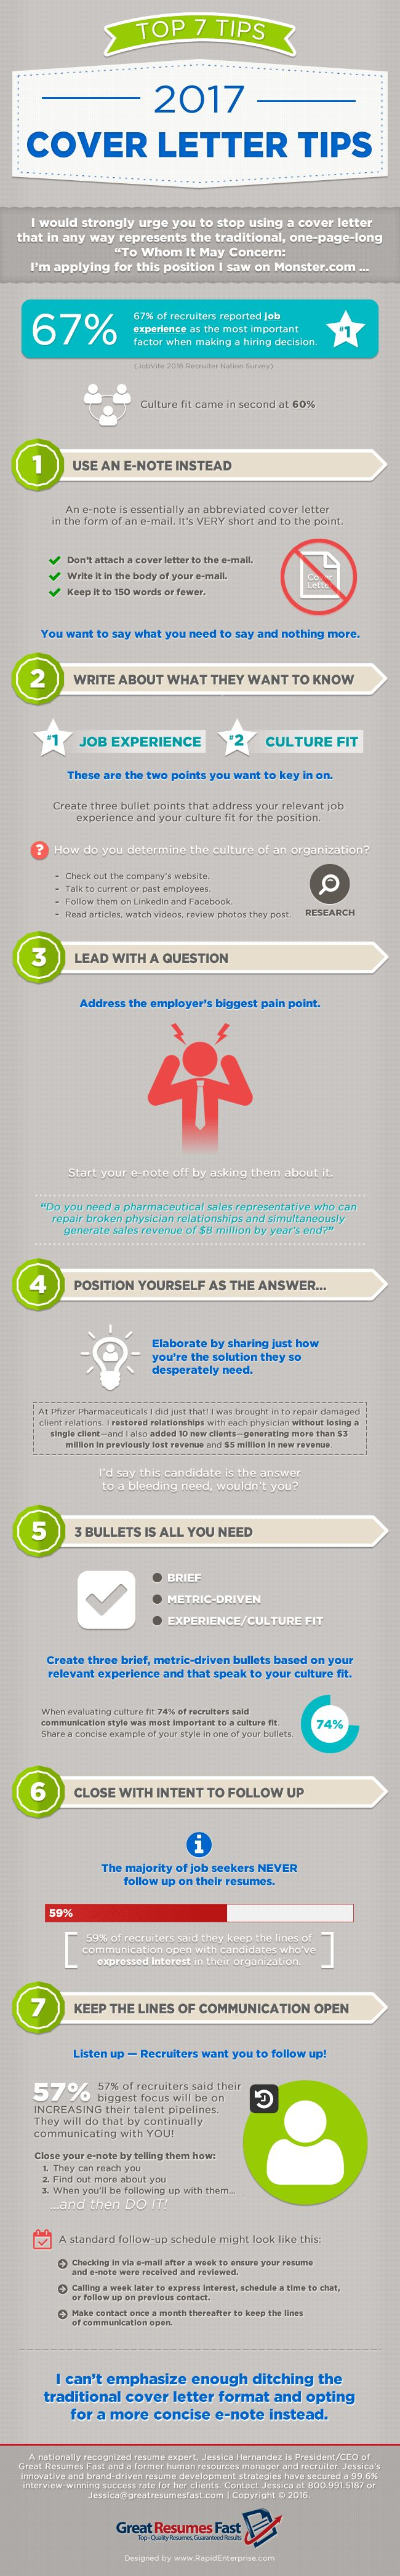 #INFOGRAPHIC: Top 7 #Cover Letter #Tips for 2017 | Jessica H. Hernandez, #Executive #Resume #Writer | Pulse | LinkedIn